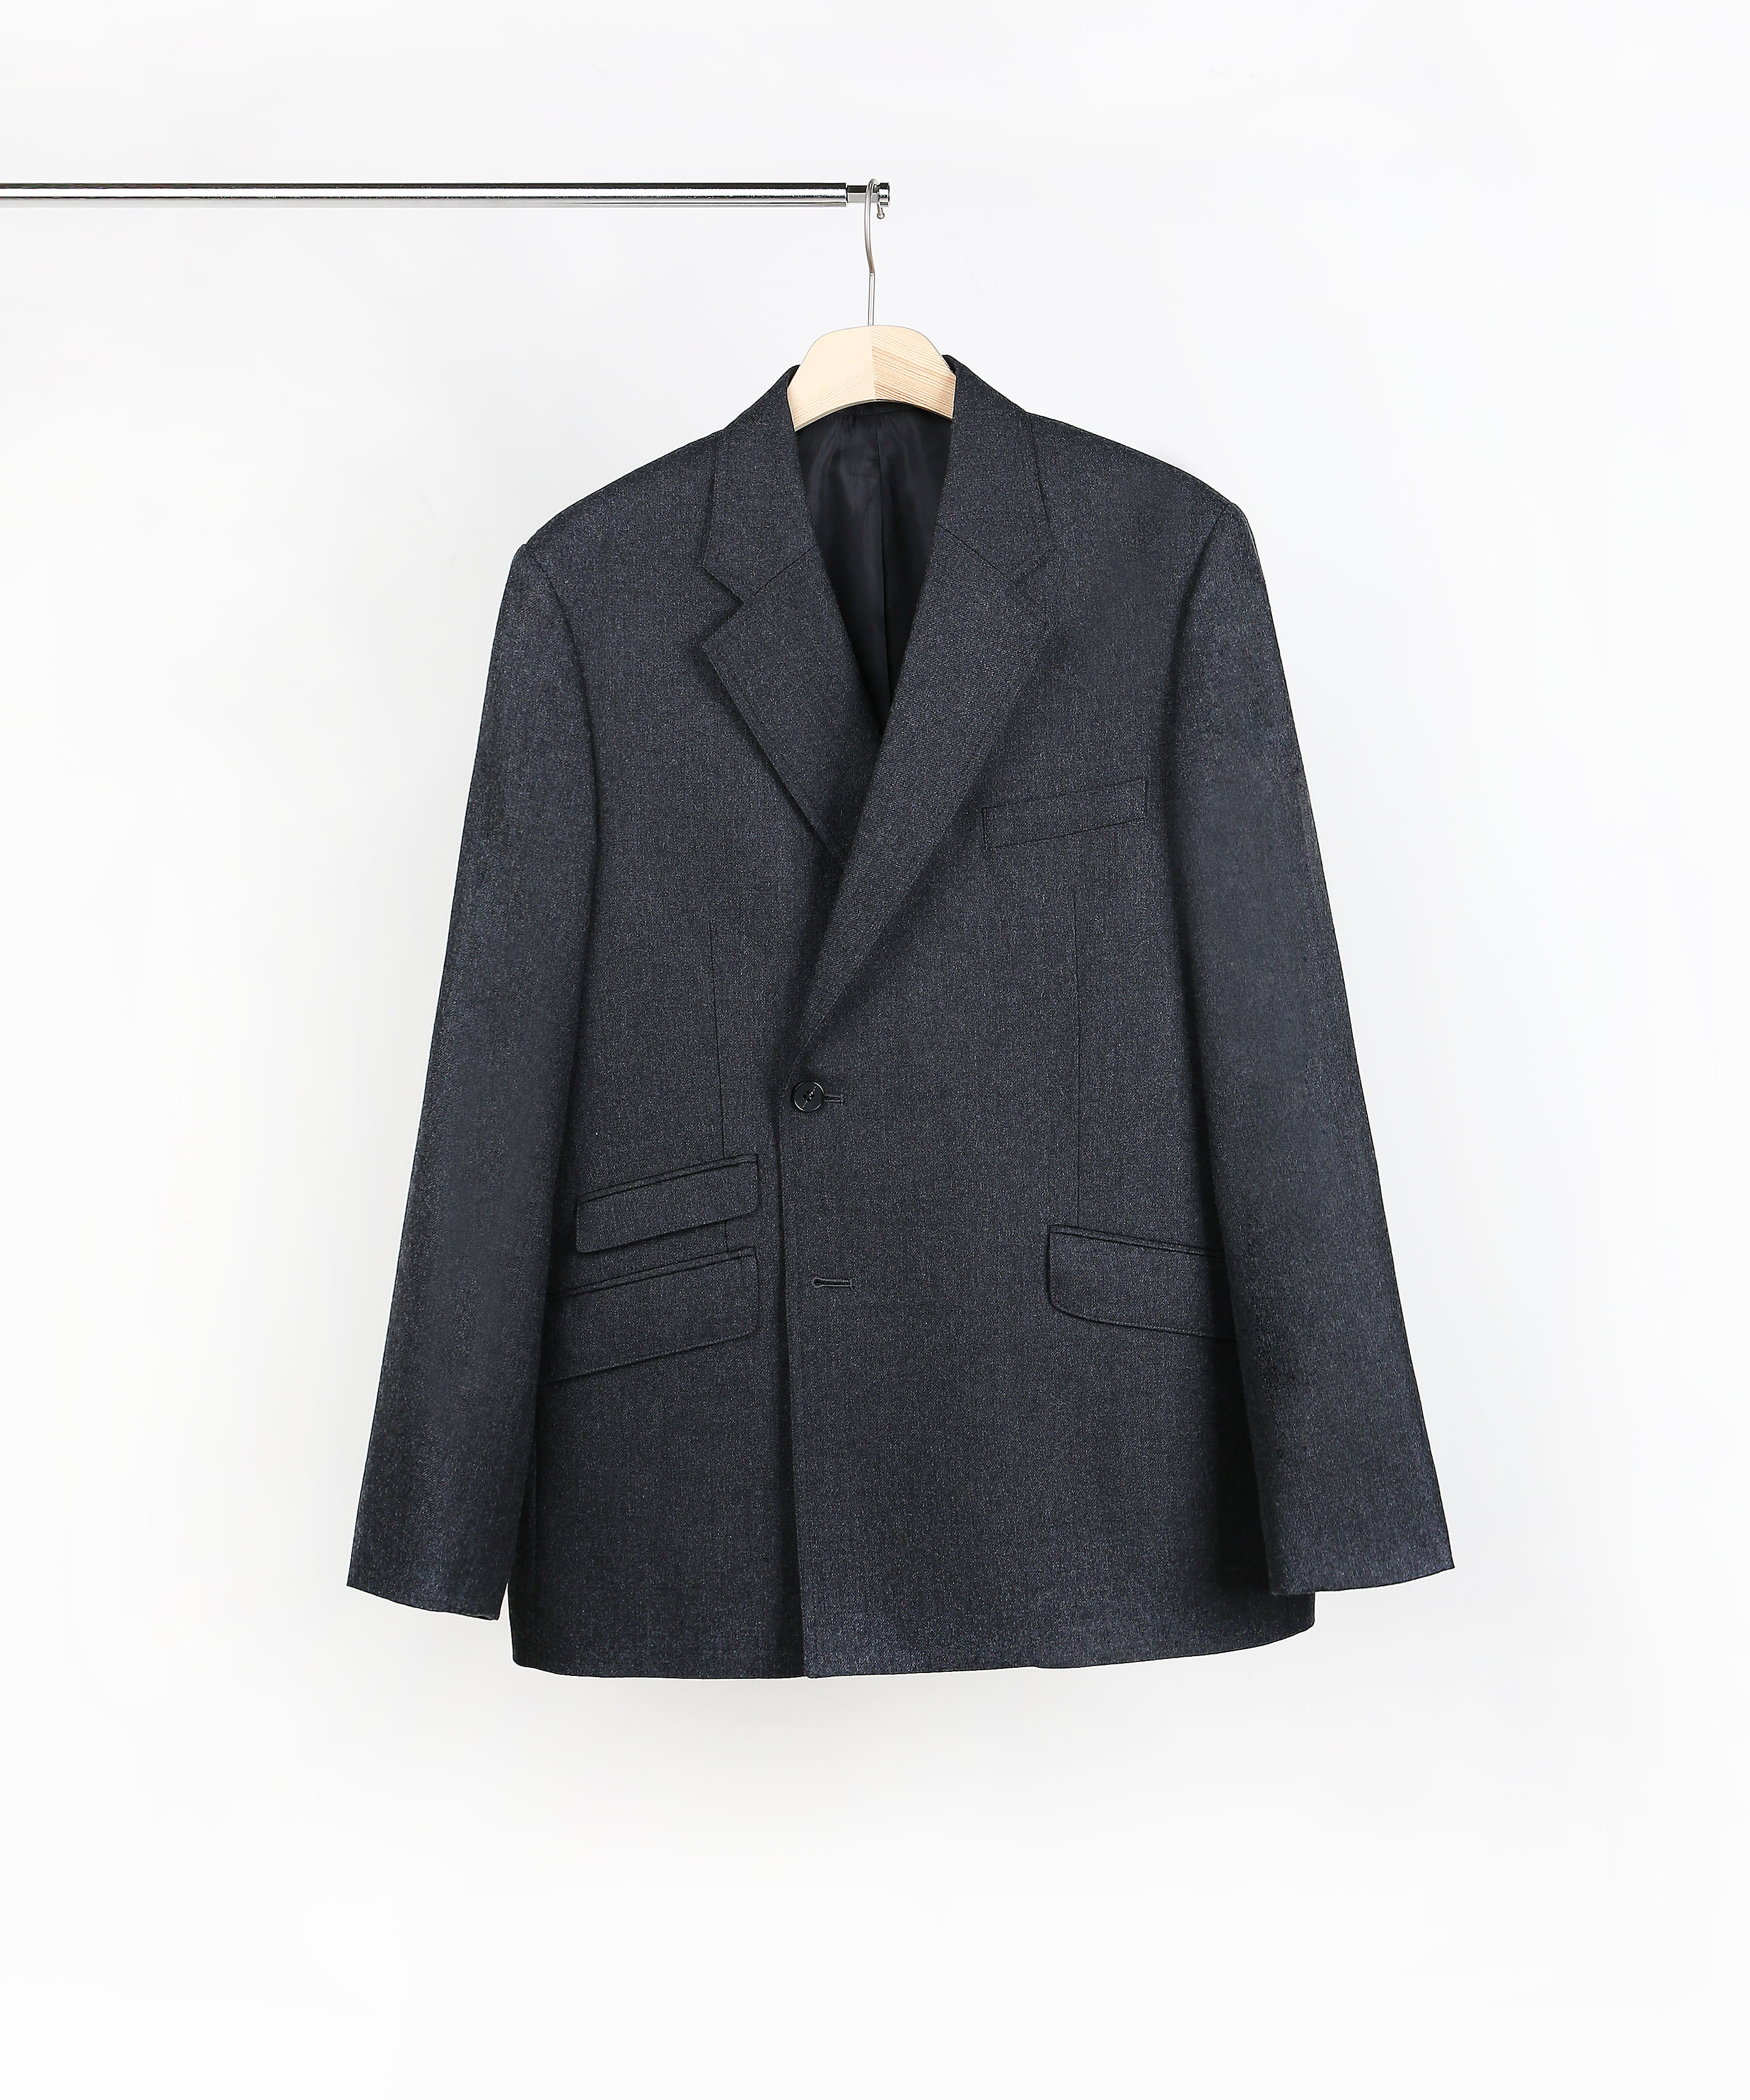 CHARCOAL DOUBLE BREASTED BLAZER 01